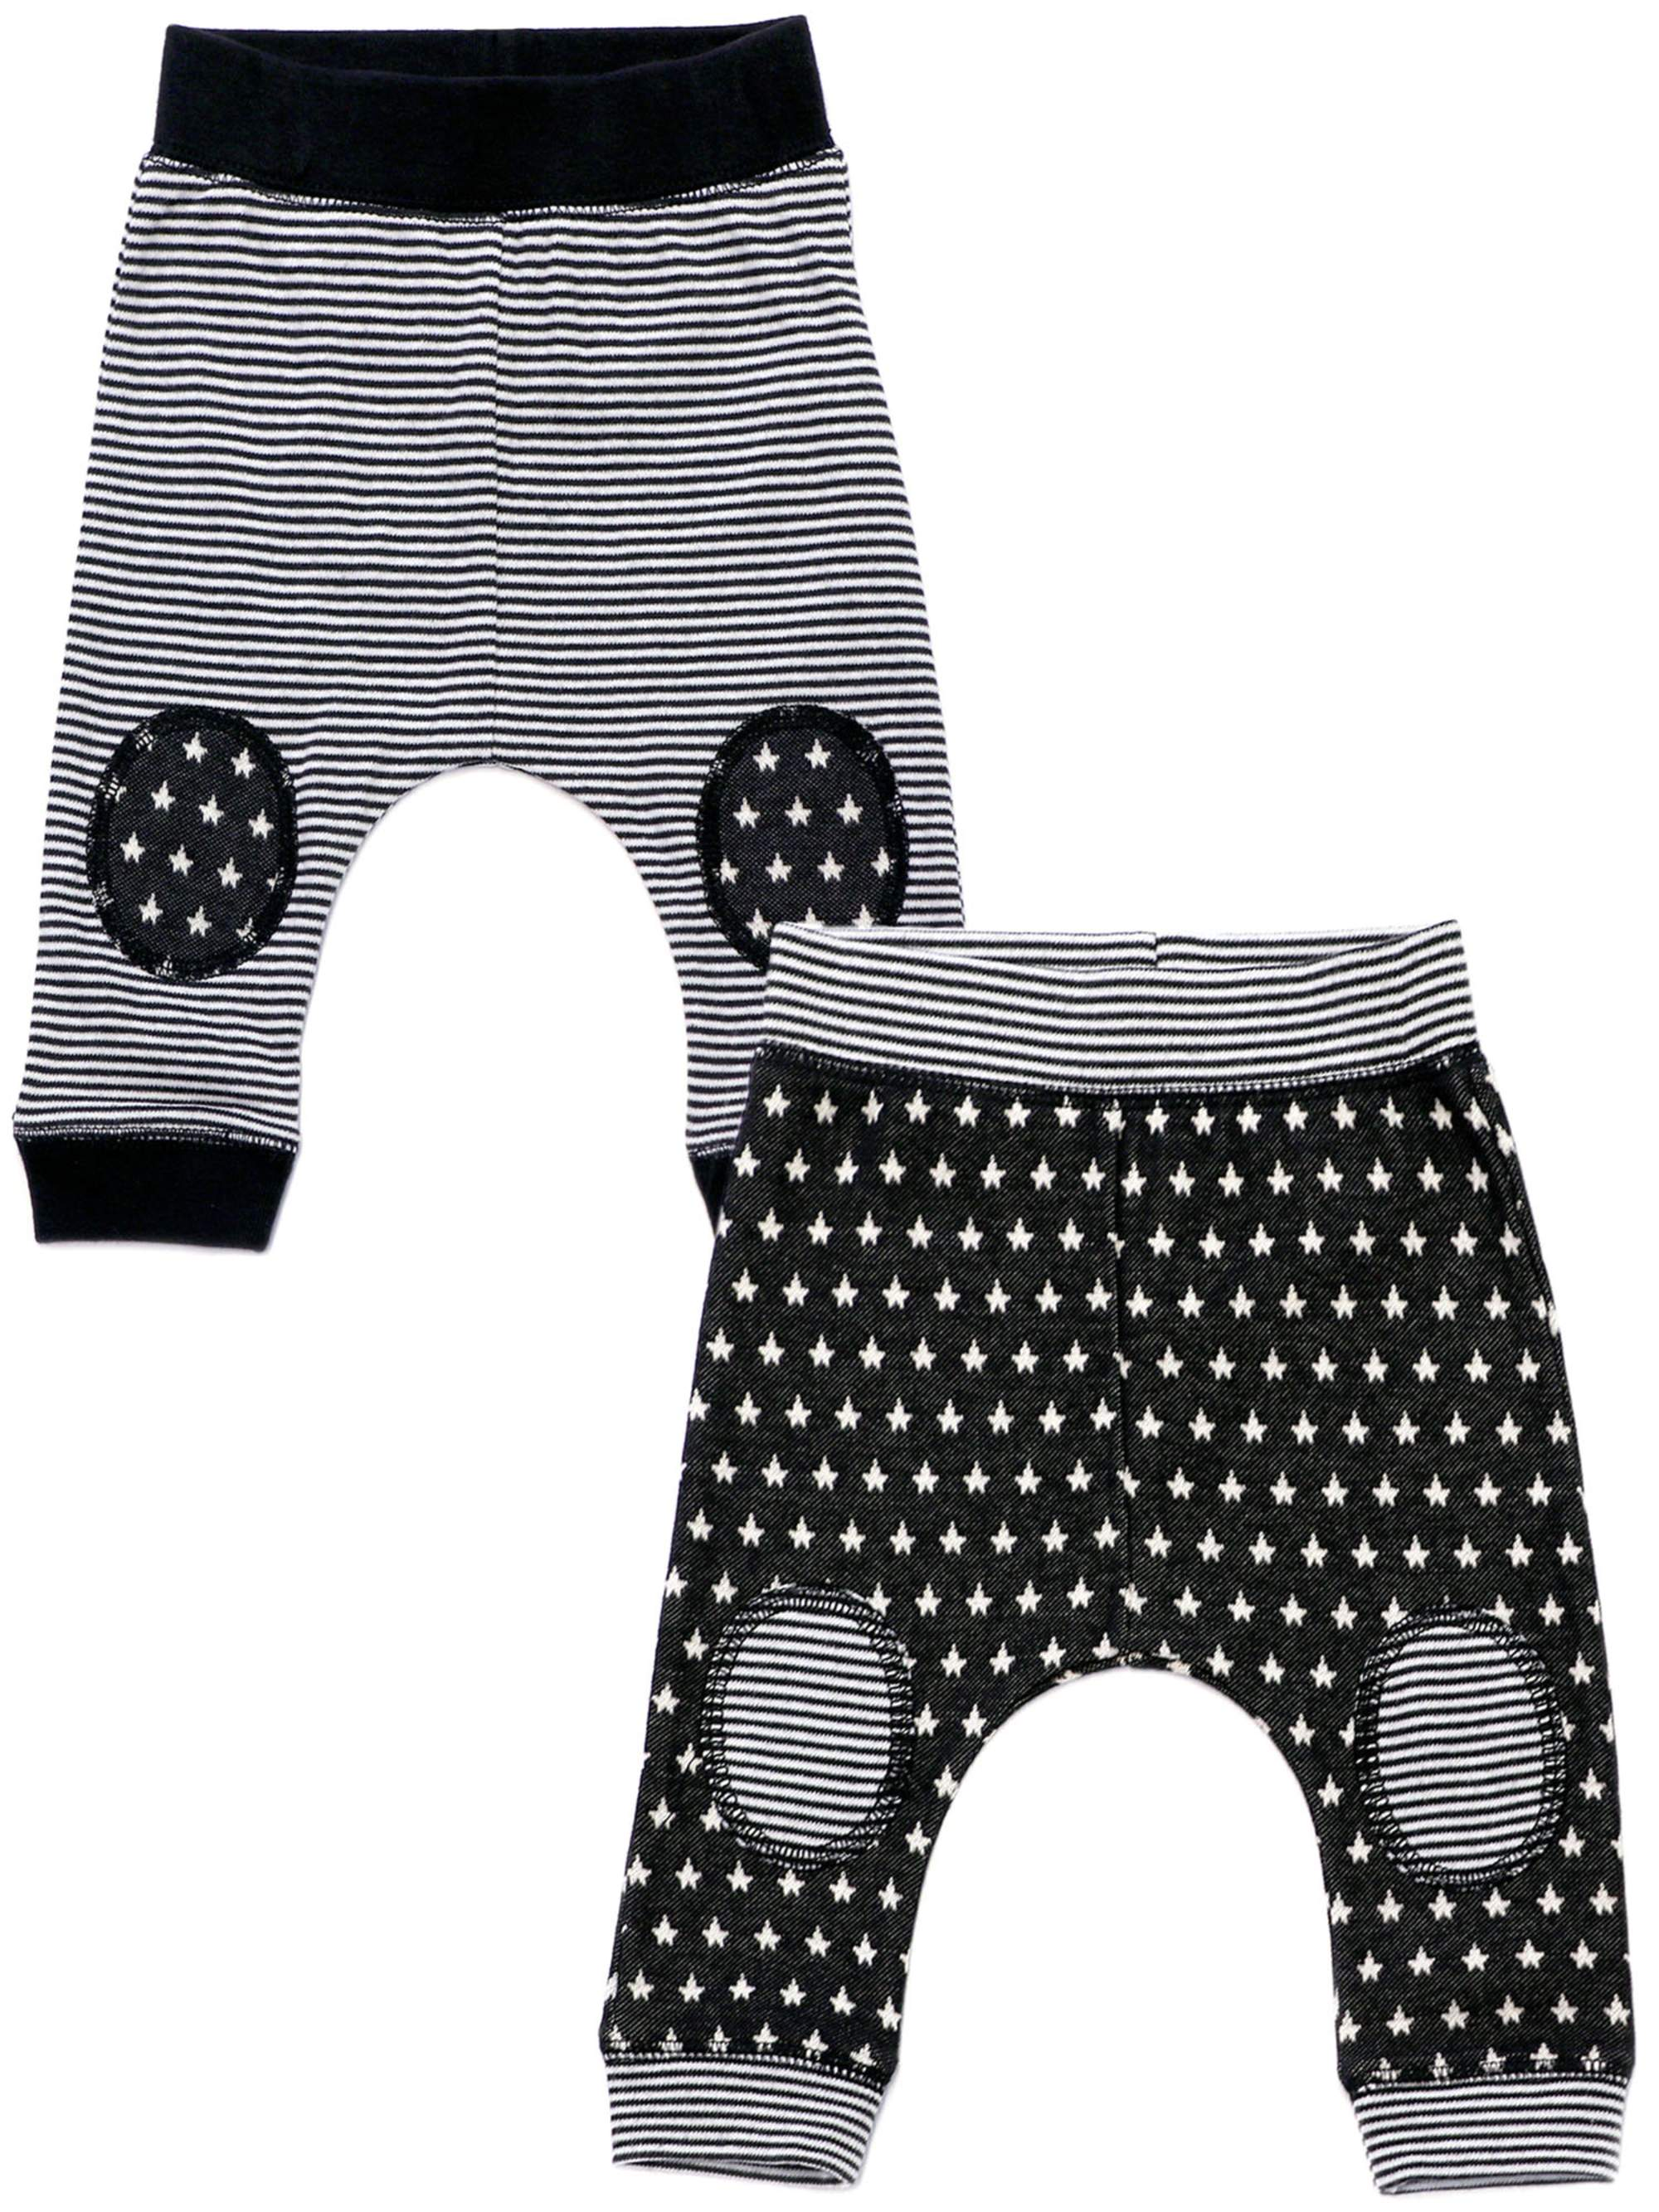 Kapital K Harem Jogger Pants, 2-pack (Baby Boys)